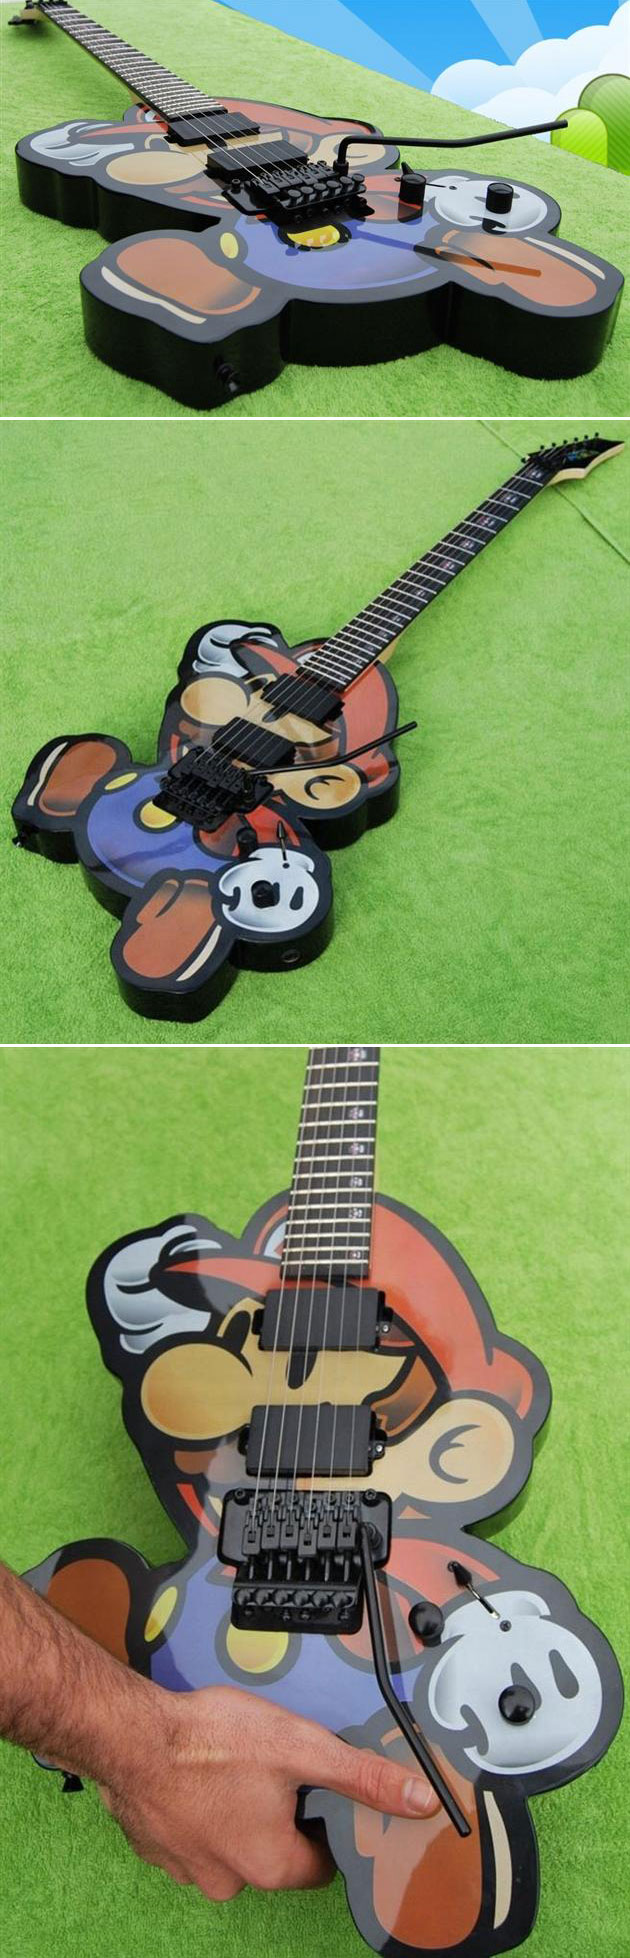 Super Mario Bros. Guitar